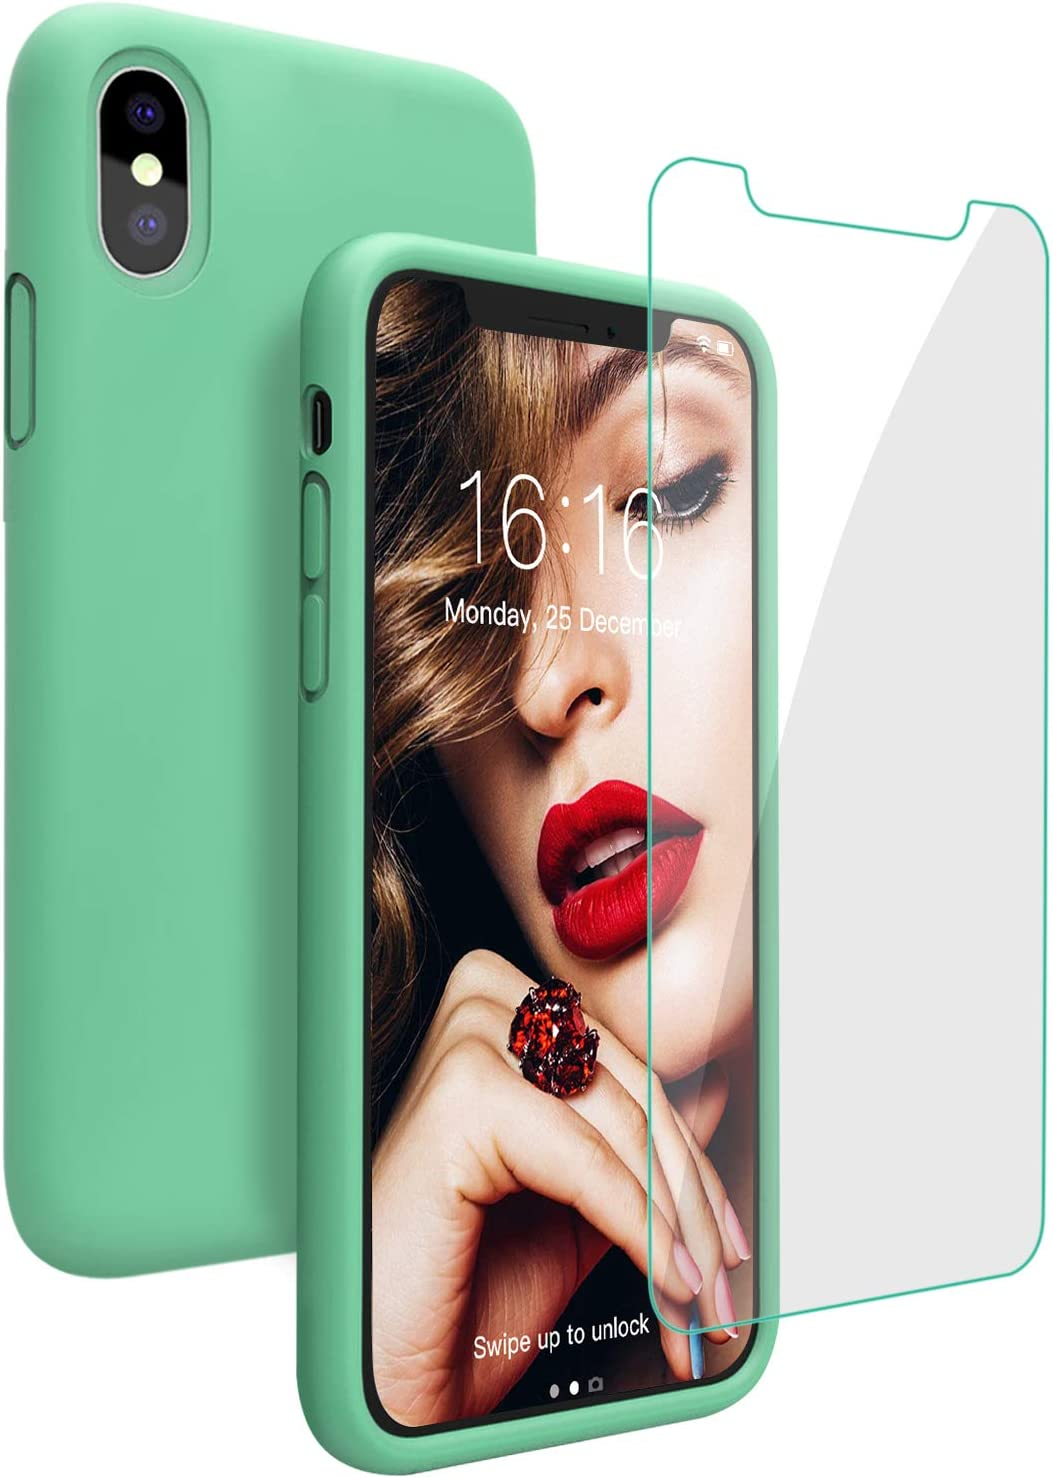 Silicone Case for iPhone X/iPhone Xs Case, JASBON Liquid Silicone Case with Free Screen Protector Gel Rubber Shockproof Cover Full Protective Case for iPhone Xs/X -Mint Green